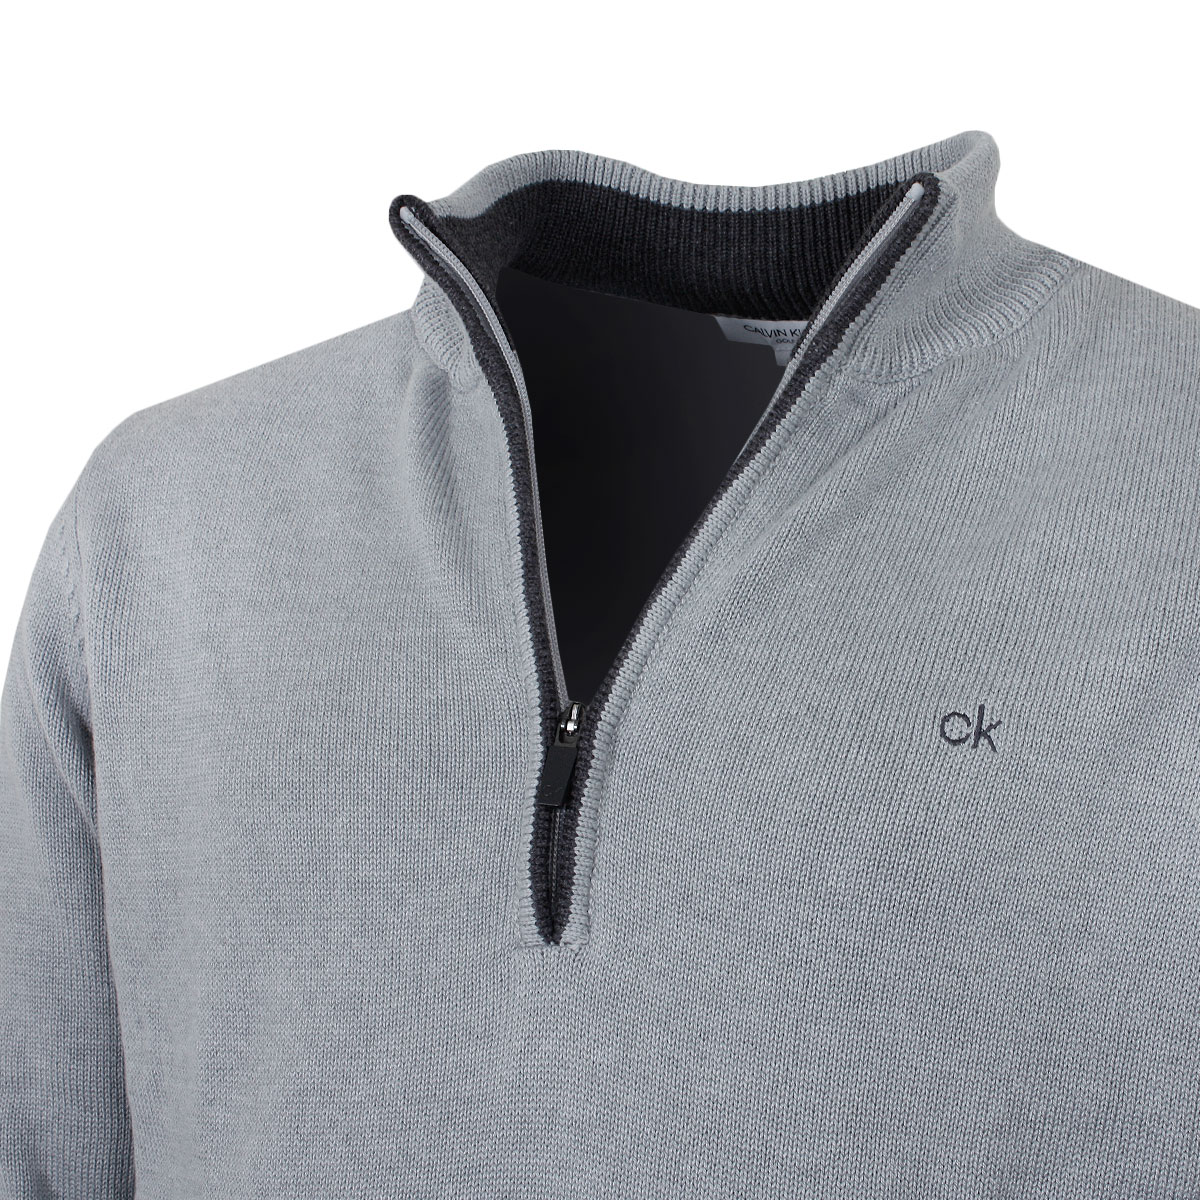 Calvin-Klein-Mens-Chunky-Knit-Cotton-1-2-Zip-CK-Golf-Sweater-25-OFF-RRP thumbnail 42